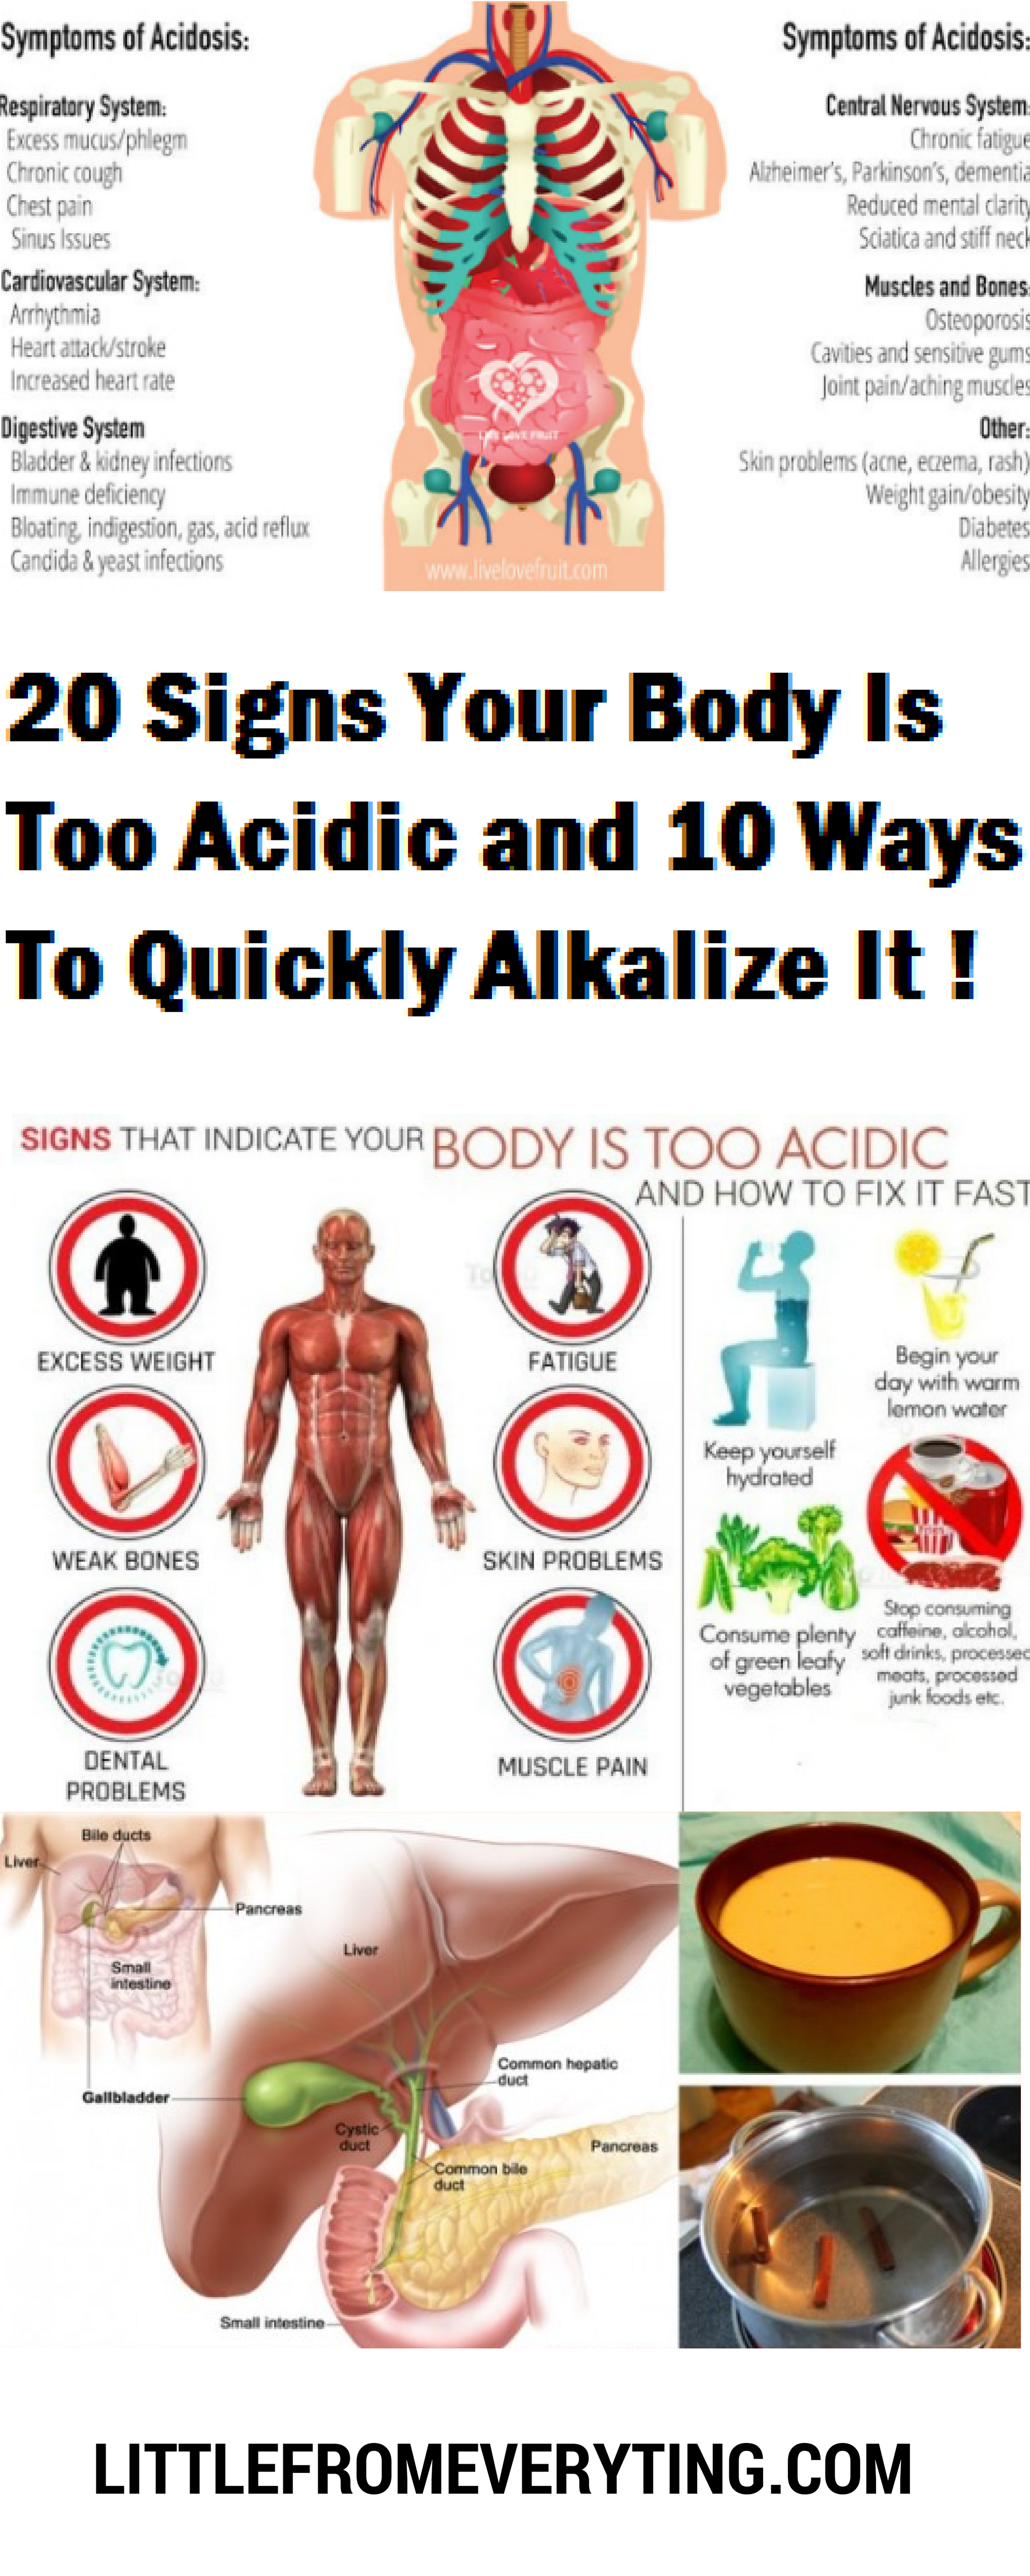 129decca5be49cfa51dbdecc67c1f426 - How To Get Rid Of Too Much Acid In Stomach